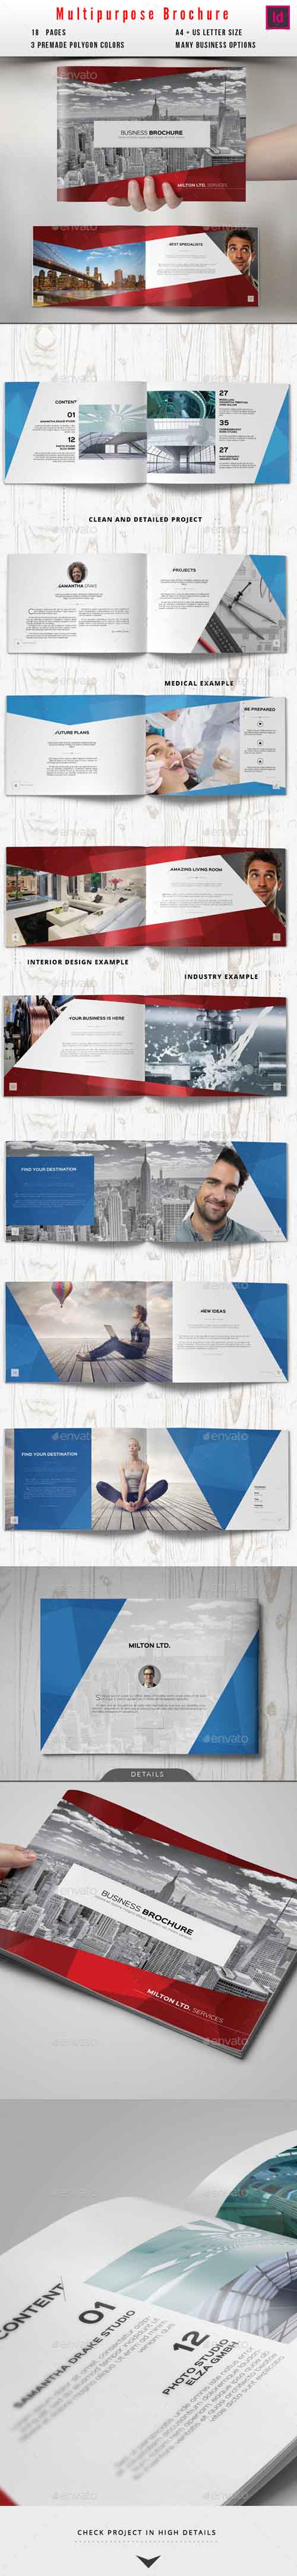 Multipurpose Business Catalog / Brochure 10425787